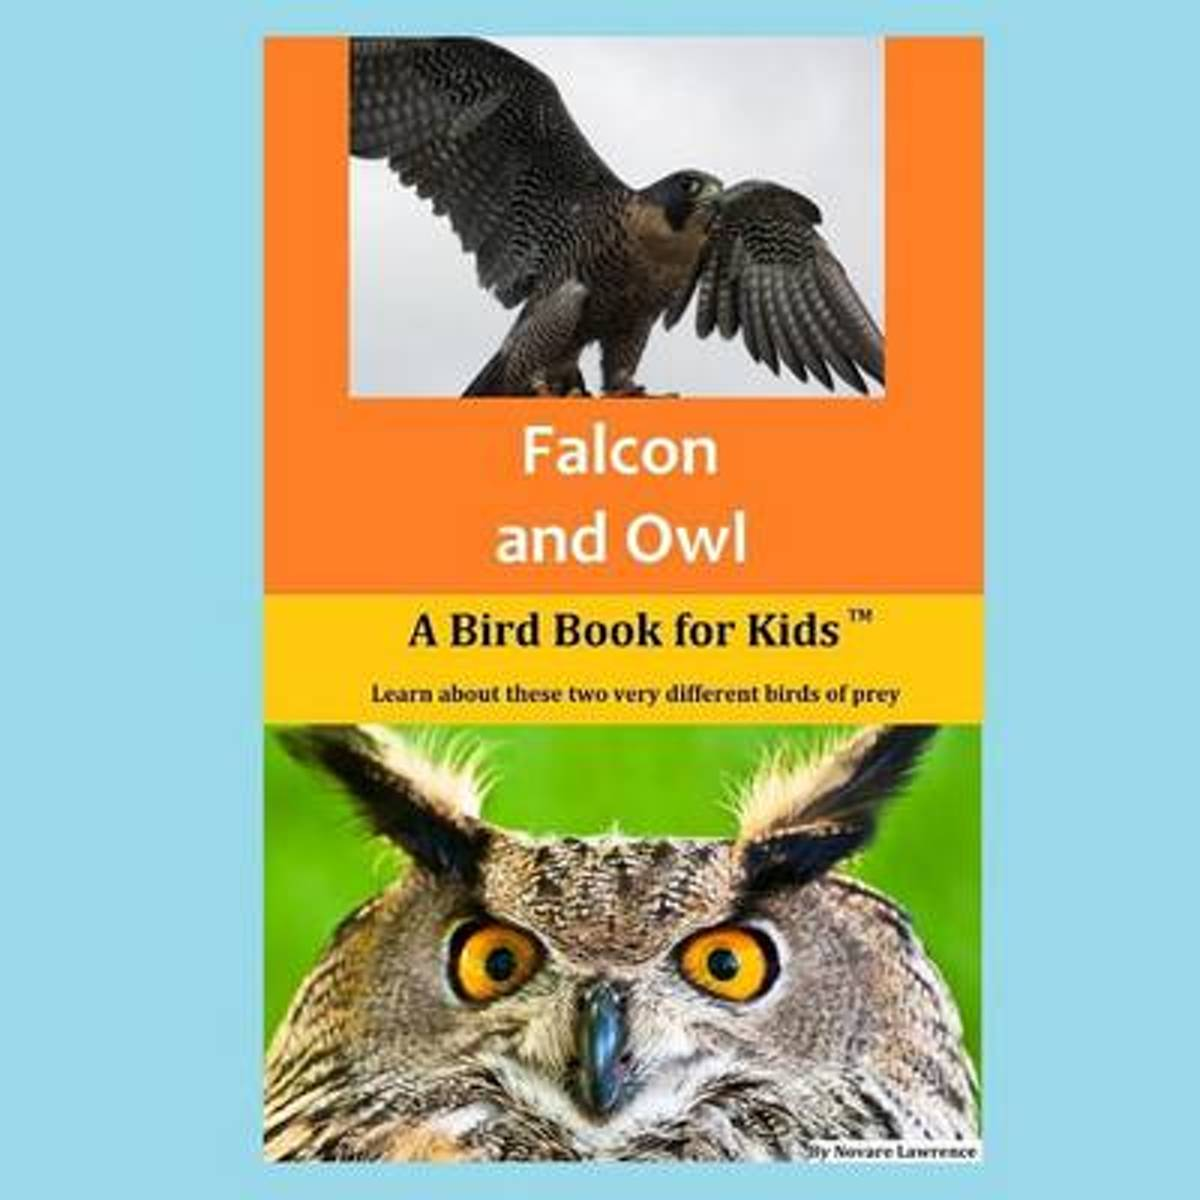 Falcon and Owl